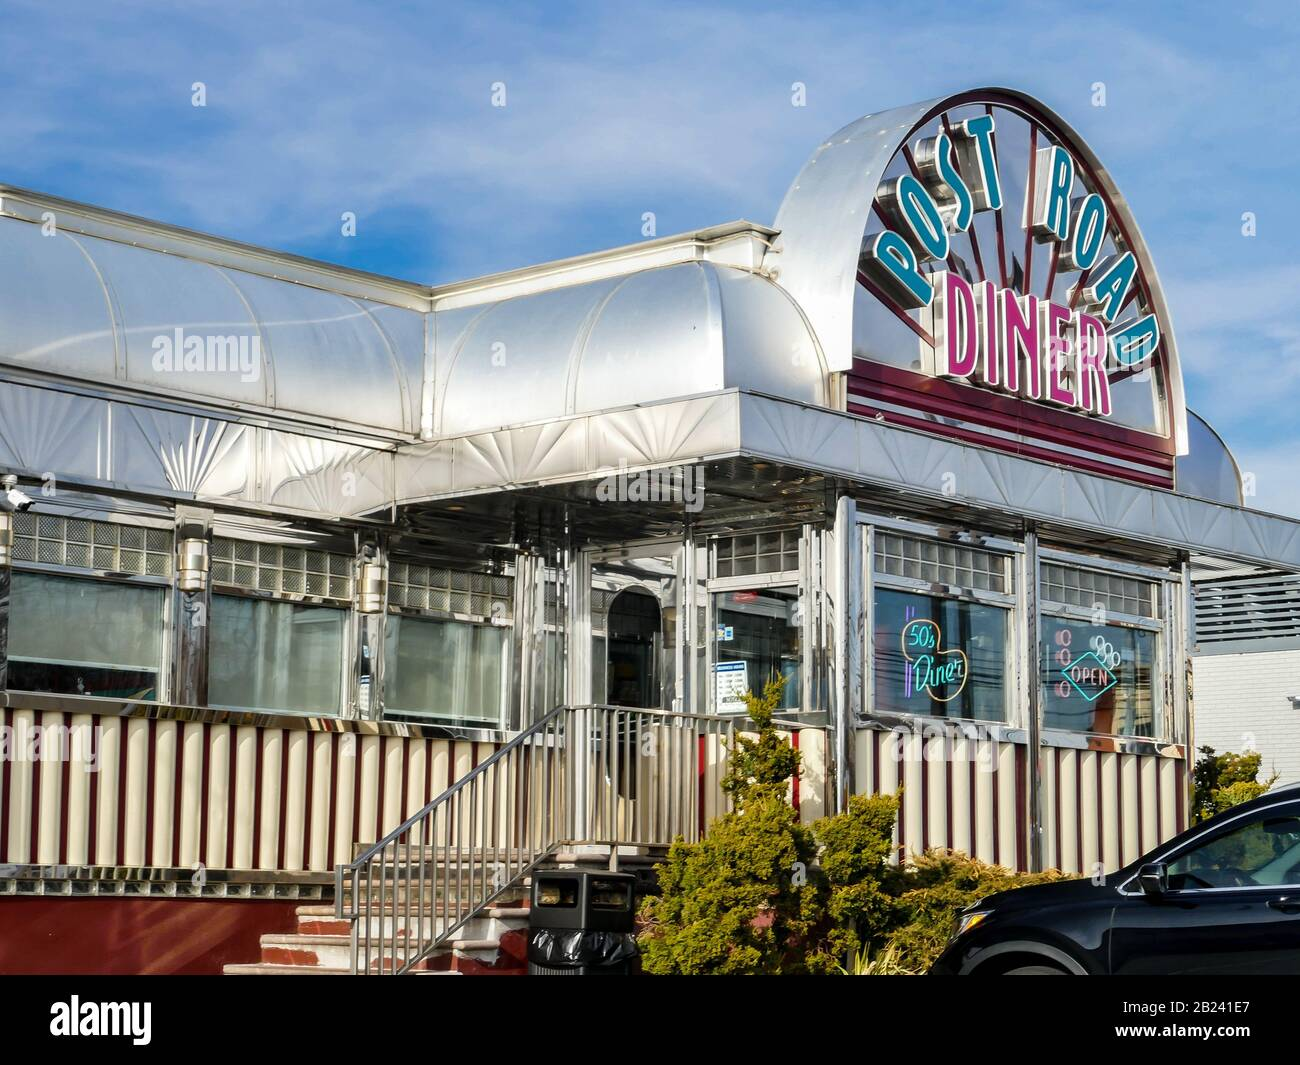 Vintage Restaurant Exterior High Resolution Stock Photography And Images Alamy